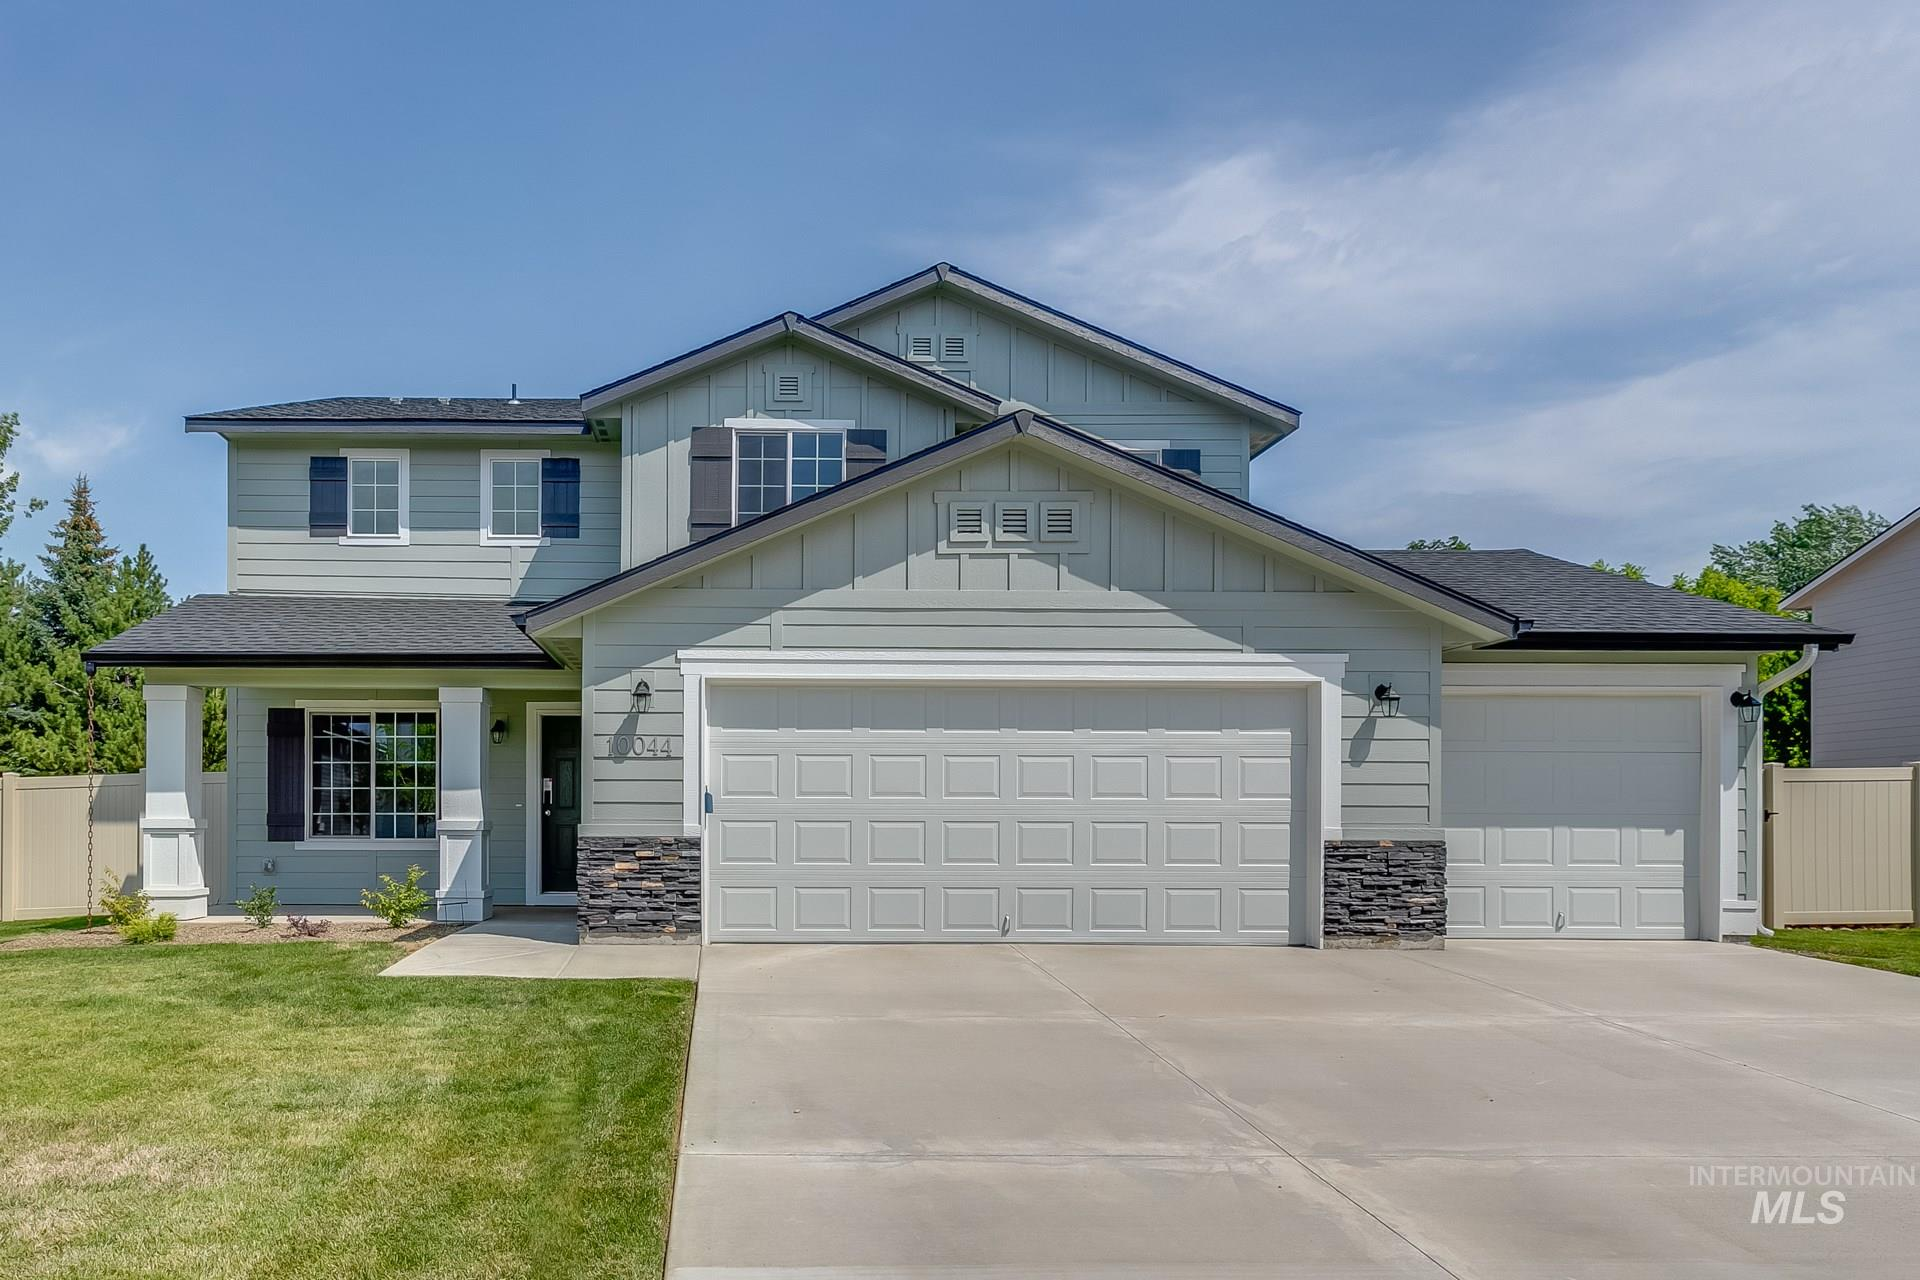 17845 N Harpster Way Property Photo - Nampa, ID real estate listing